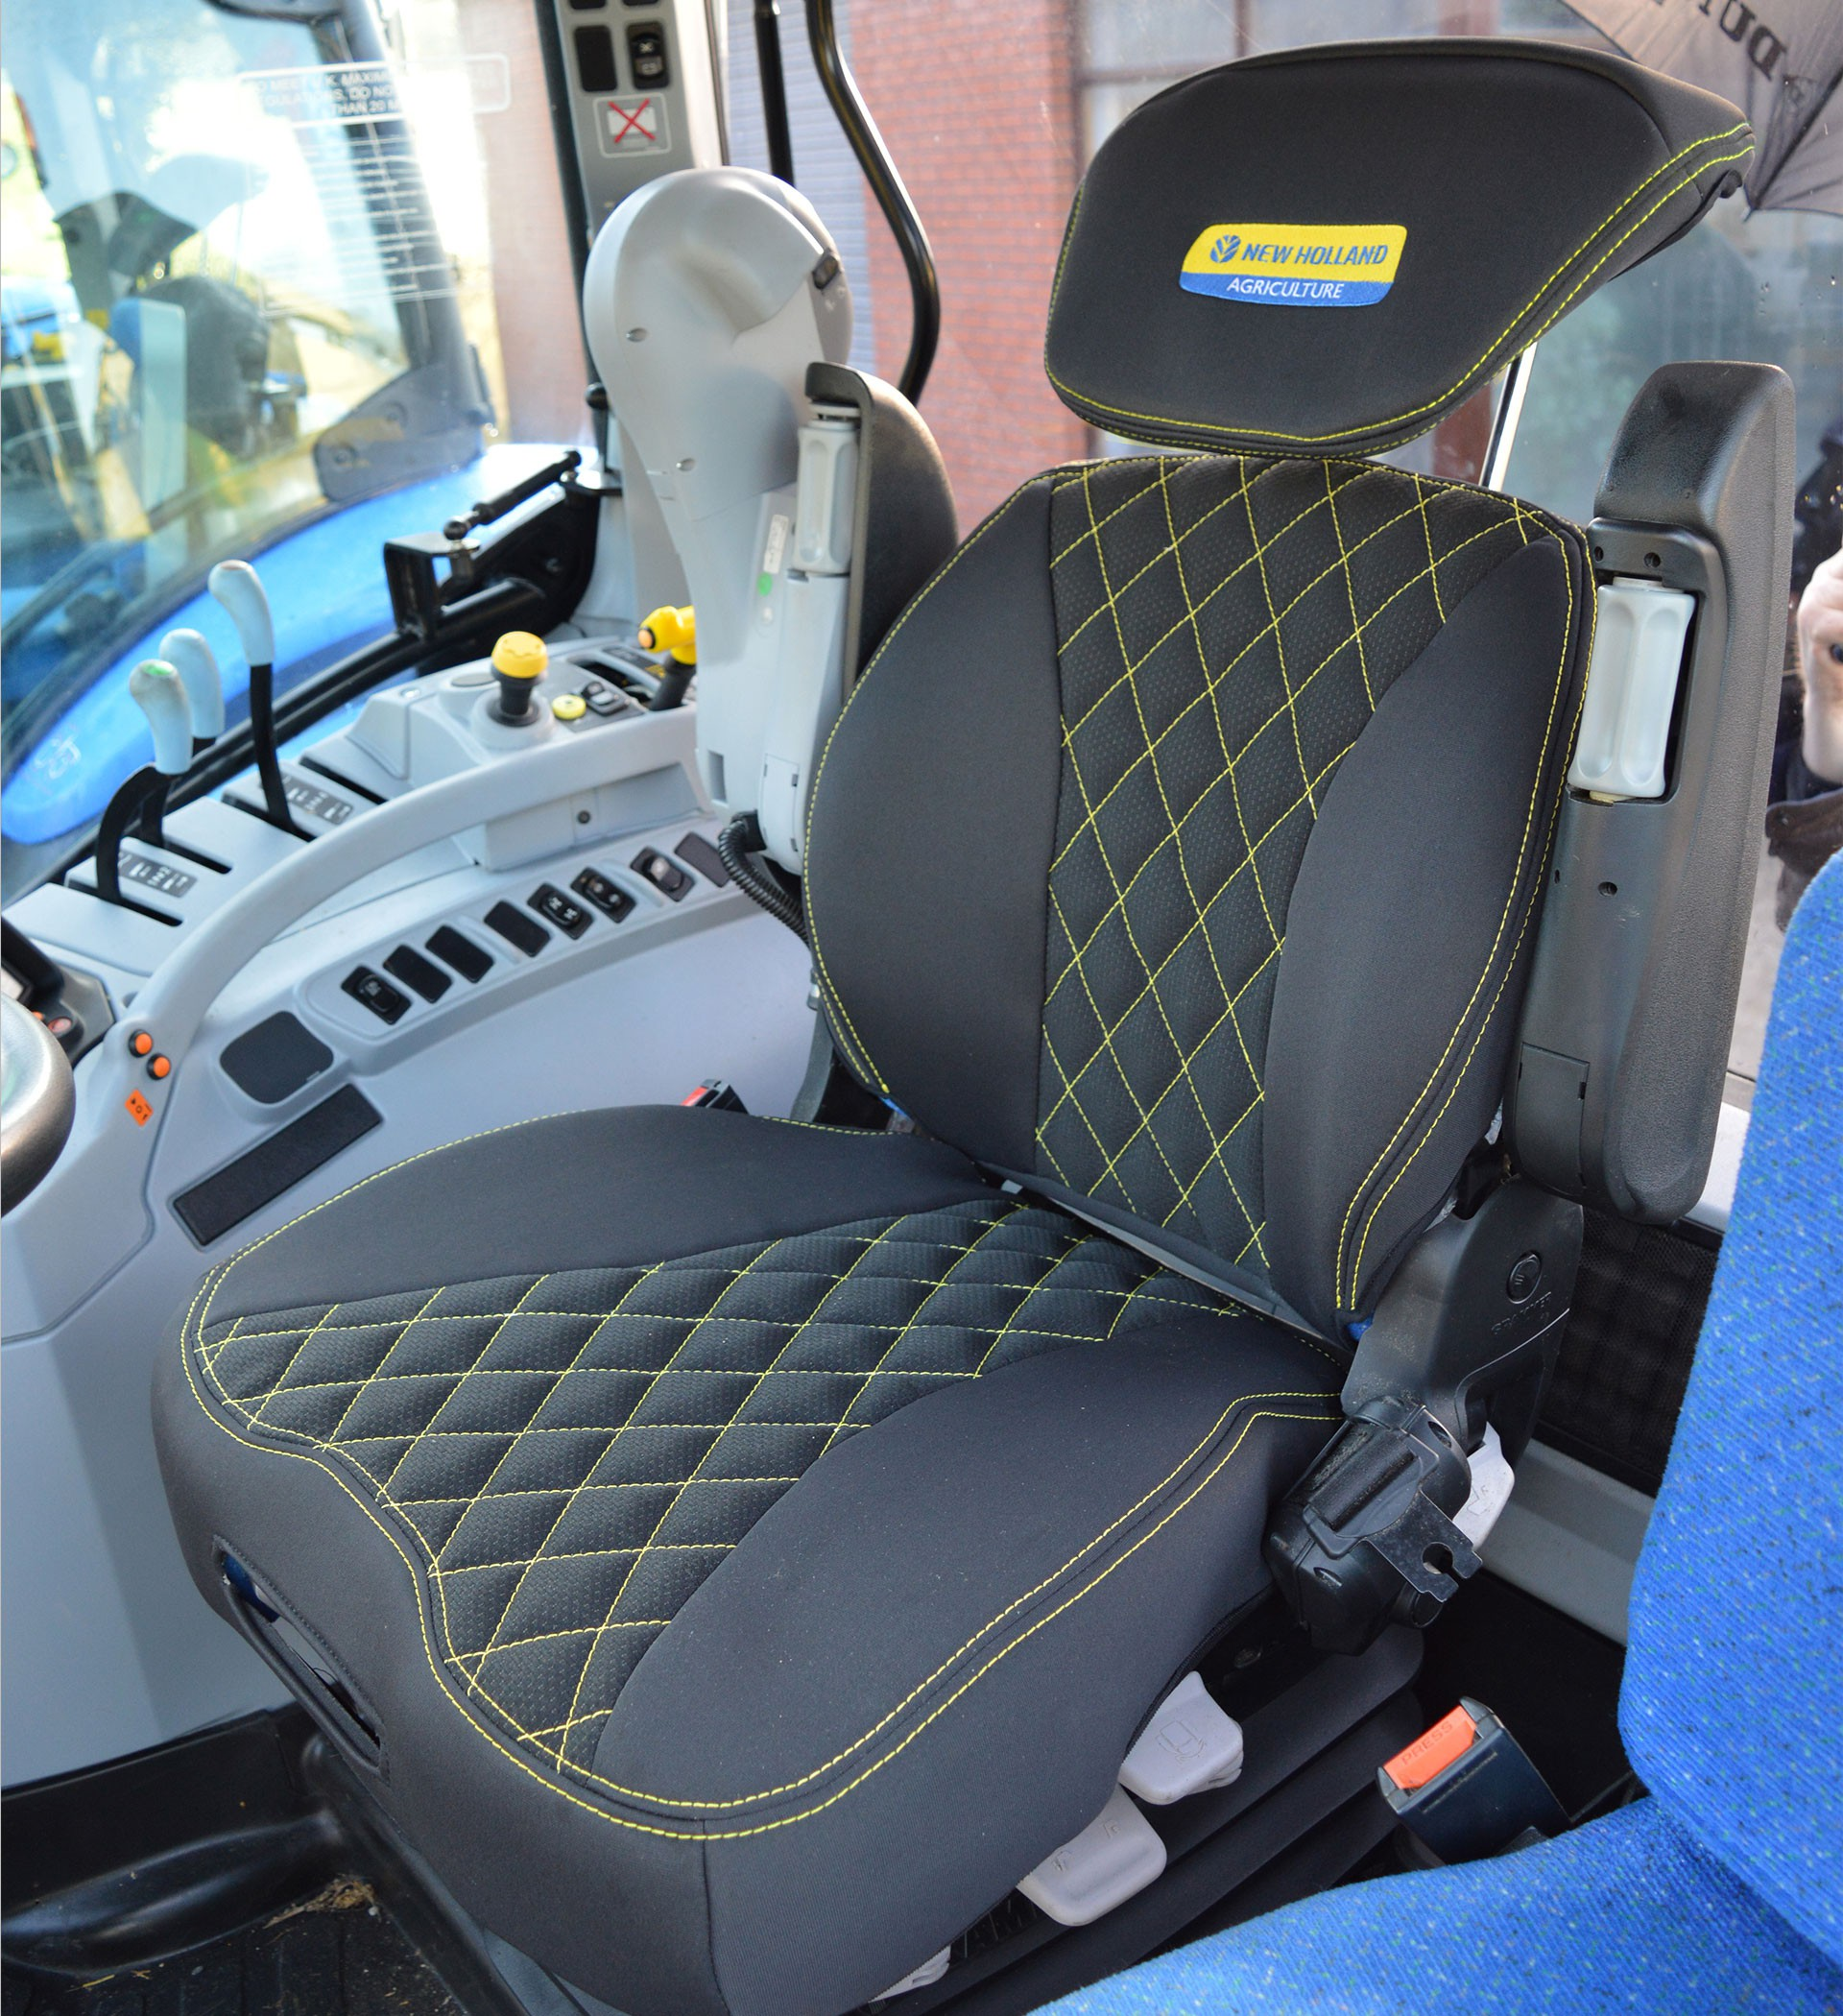 Tractor Seat And Seat Covers : New holland tractor grammer maximo dynamic tailored seat